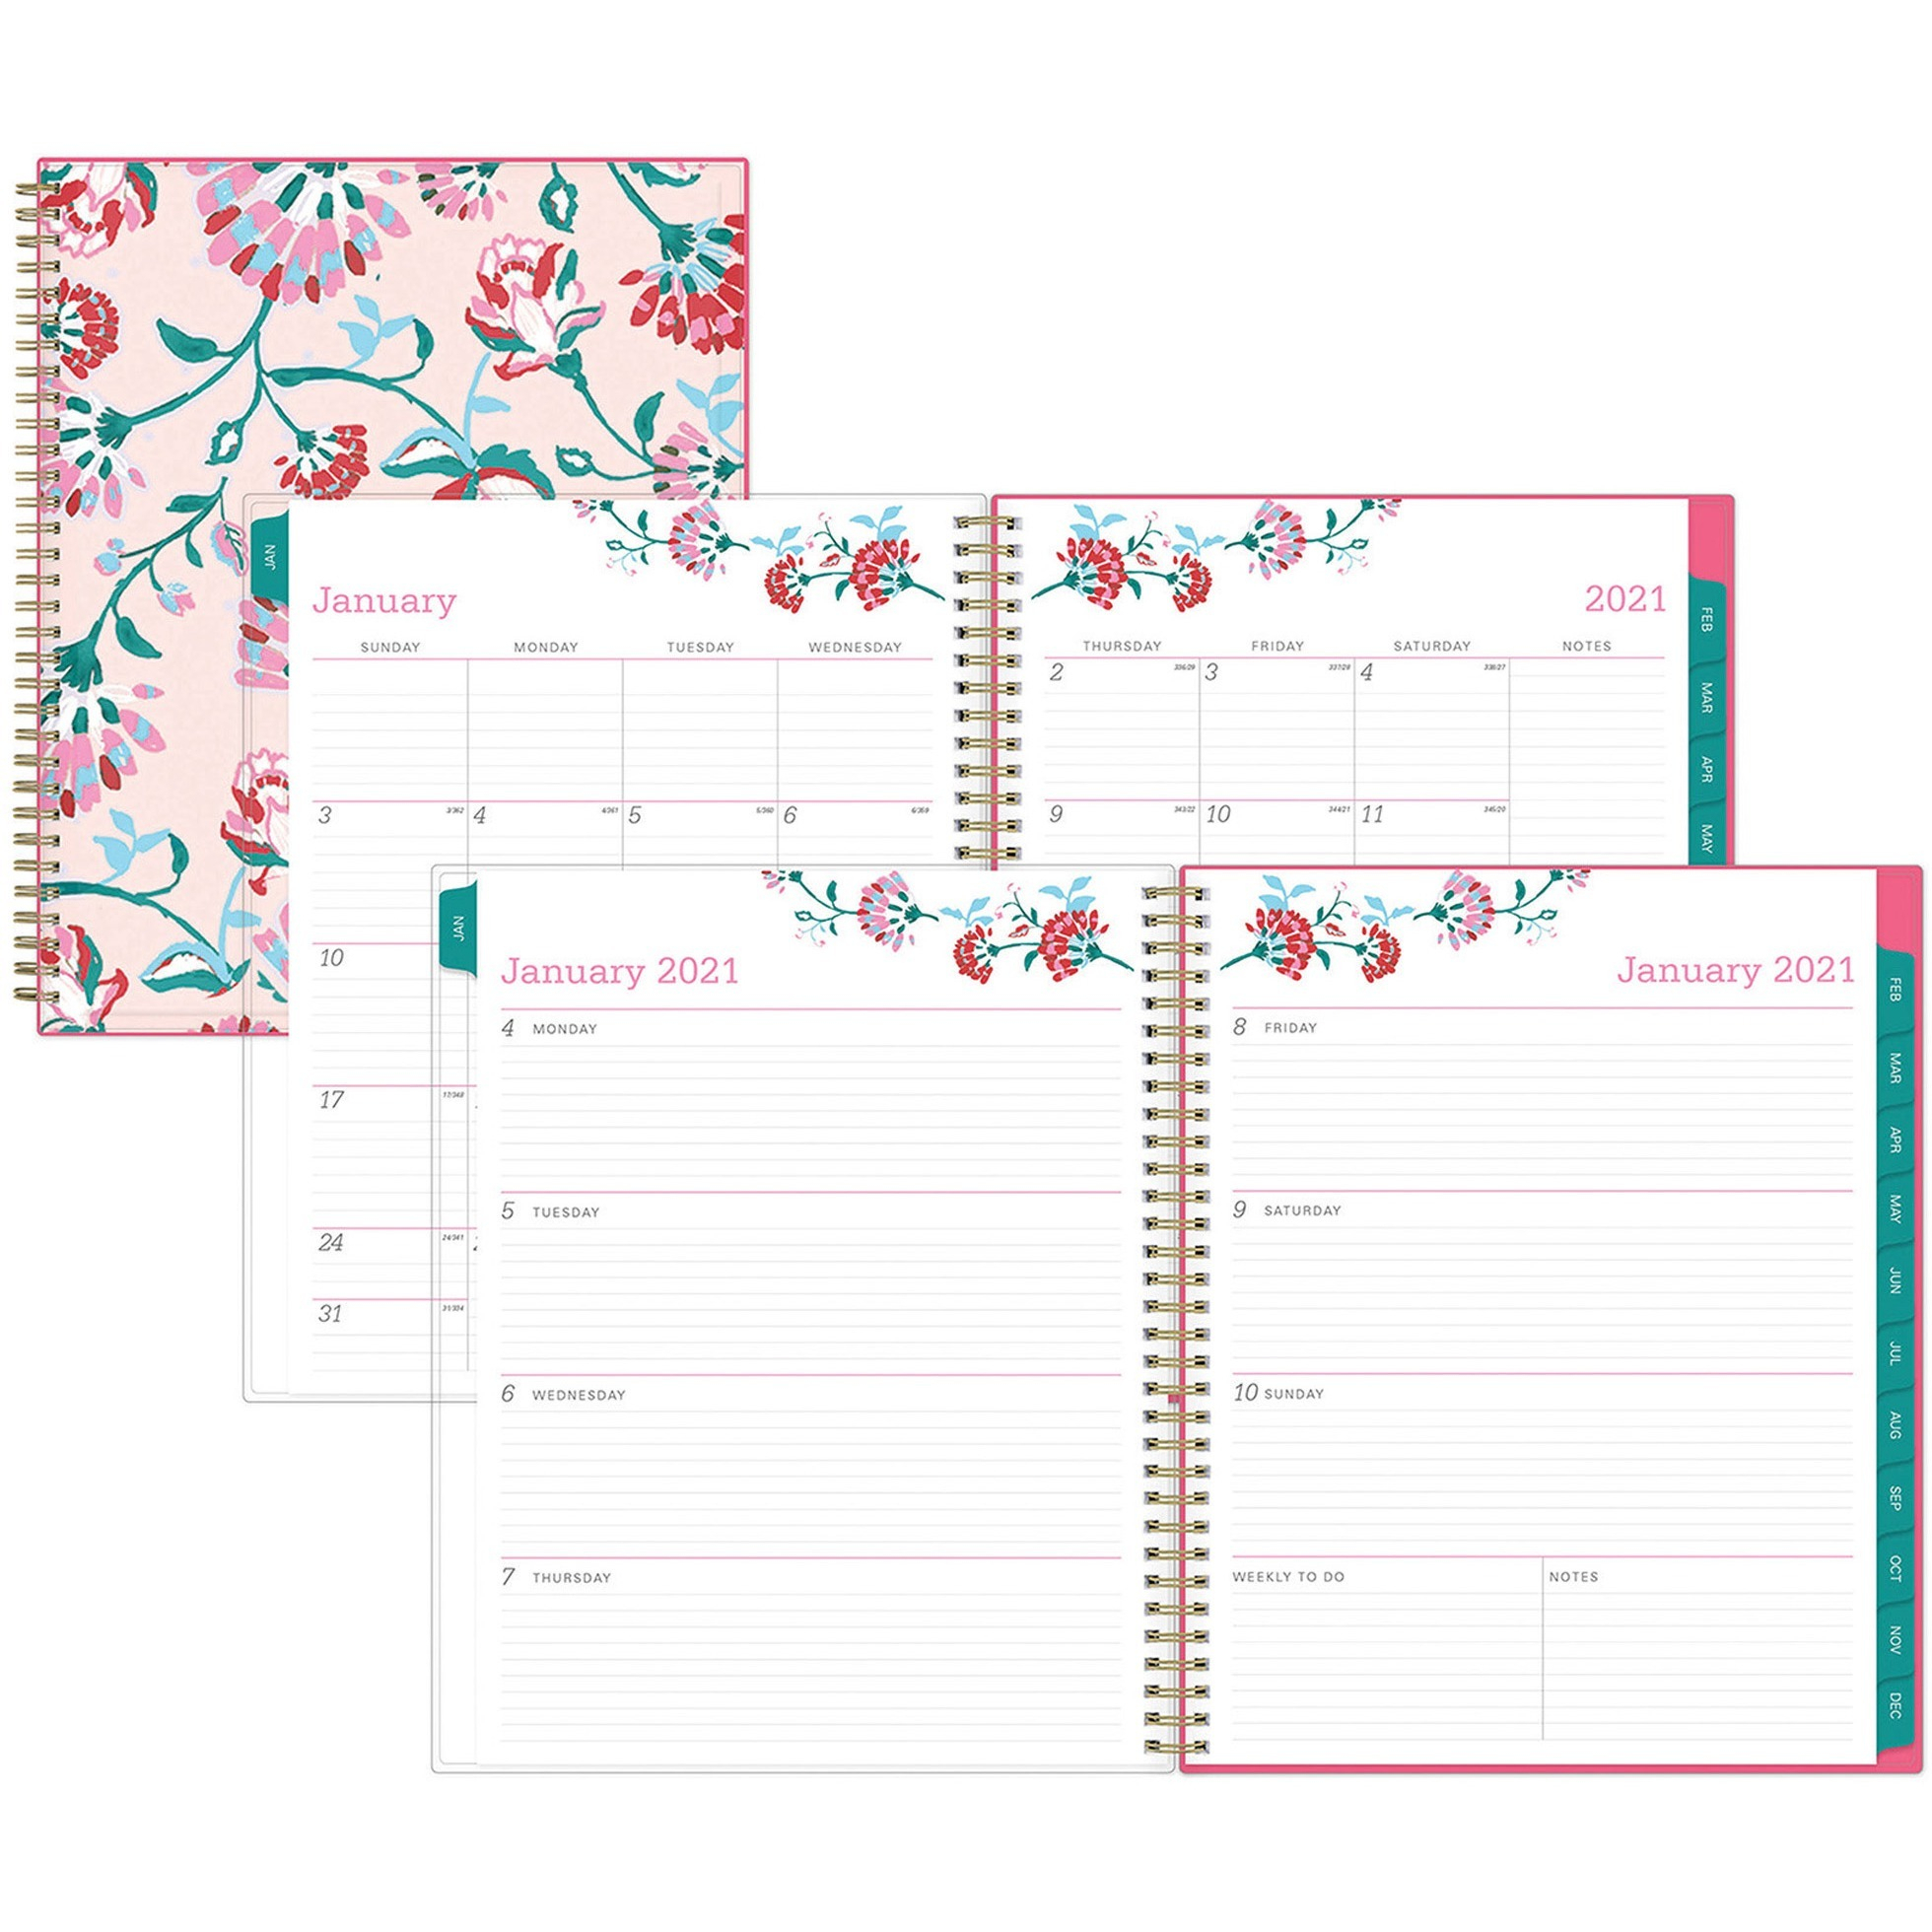 Blue Sky Bca Alexandra Large Weekly/Monthly Planner - Julian Dates -  Weekly, Monthly - 1 Year - January 2021 Till December 2021 - 1 Week Double  Page